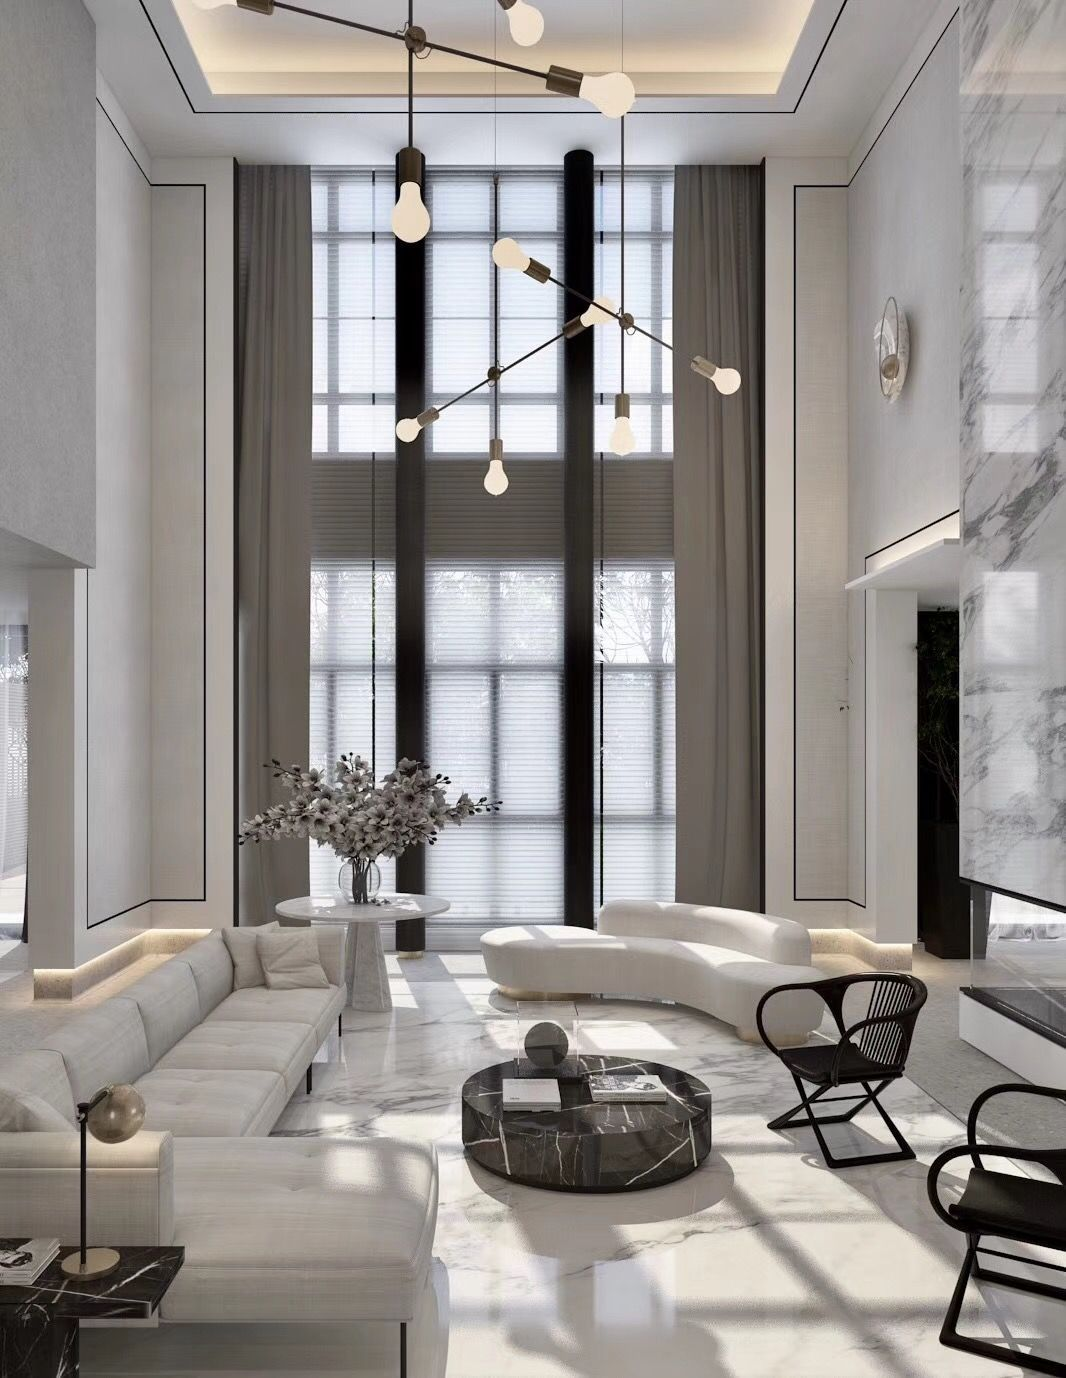 Idee Deco Salon Design covet paris - a showroom with more 300 products exhibited